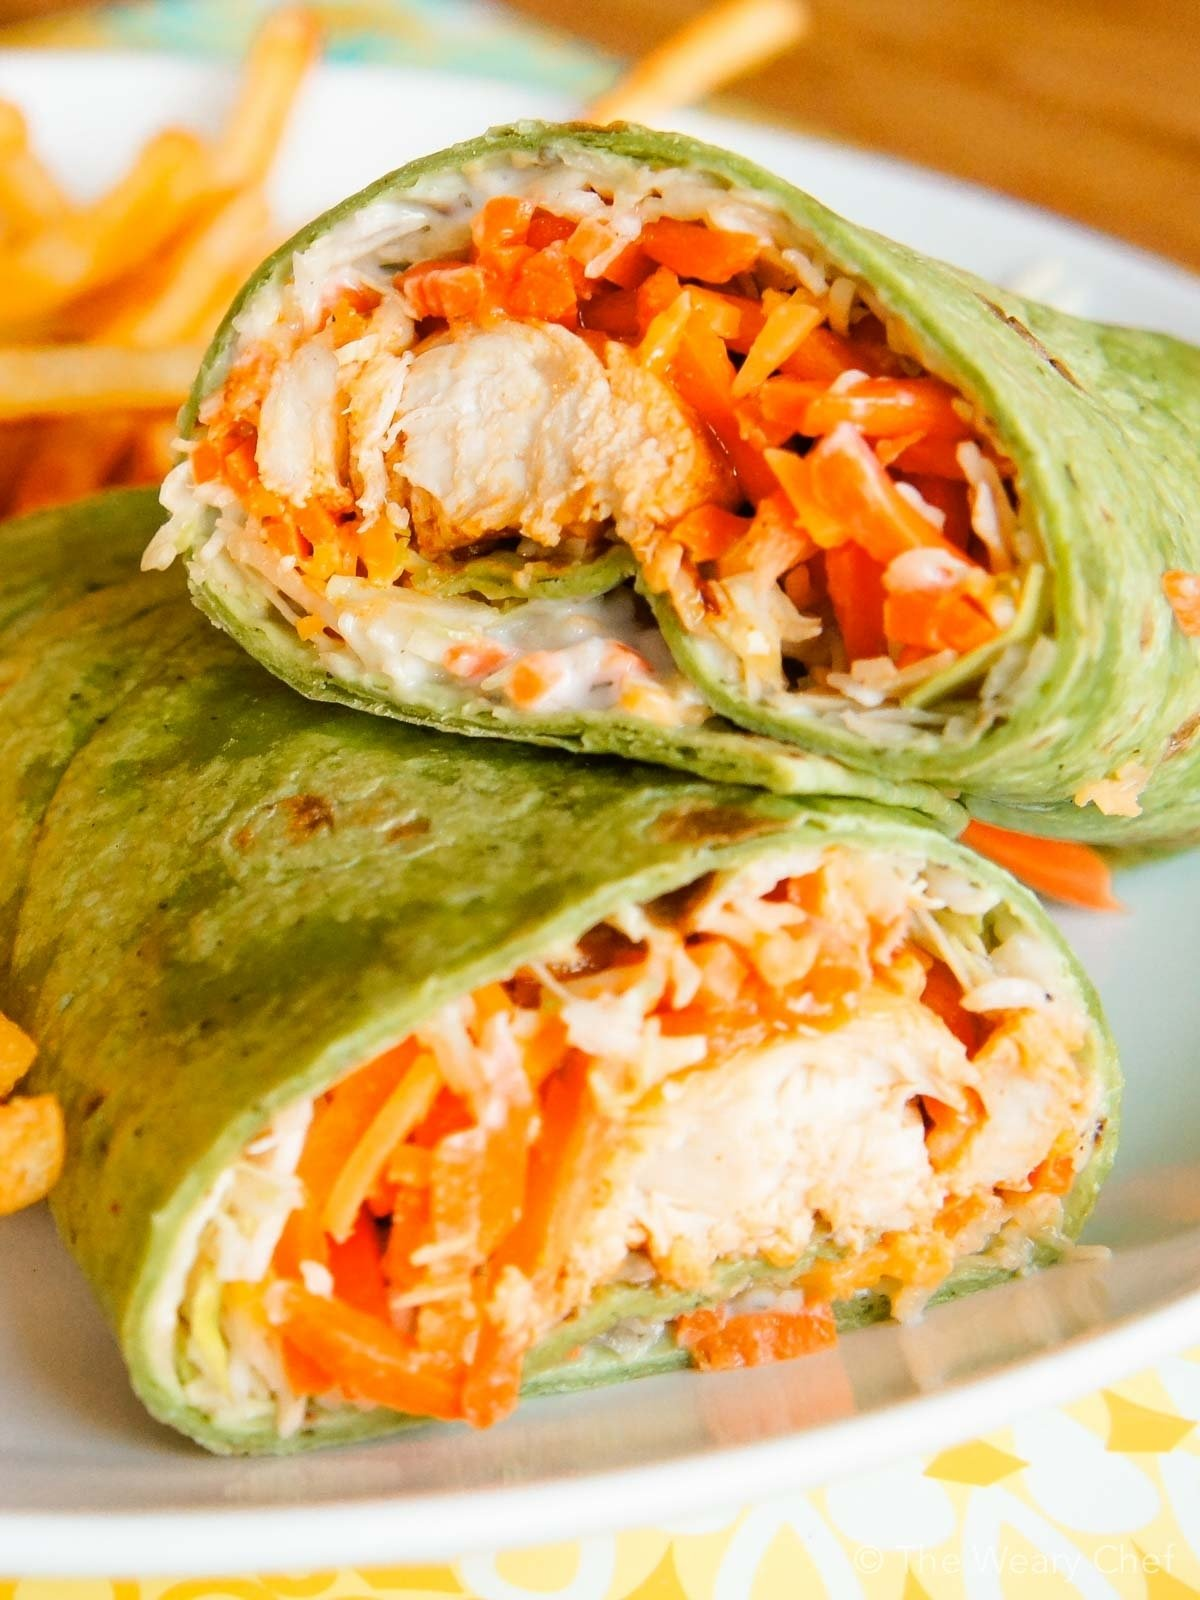 10 Gorgeous Easy Supper Ideas For Two buffalo chicken wraps a fun and tasty dinner idea the weary chef 14 2020